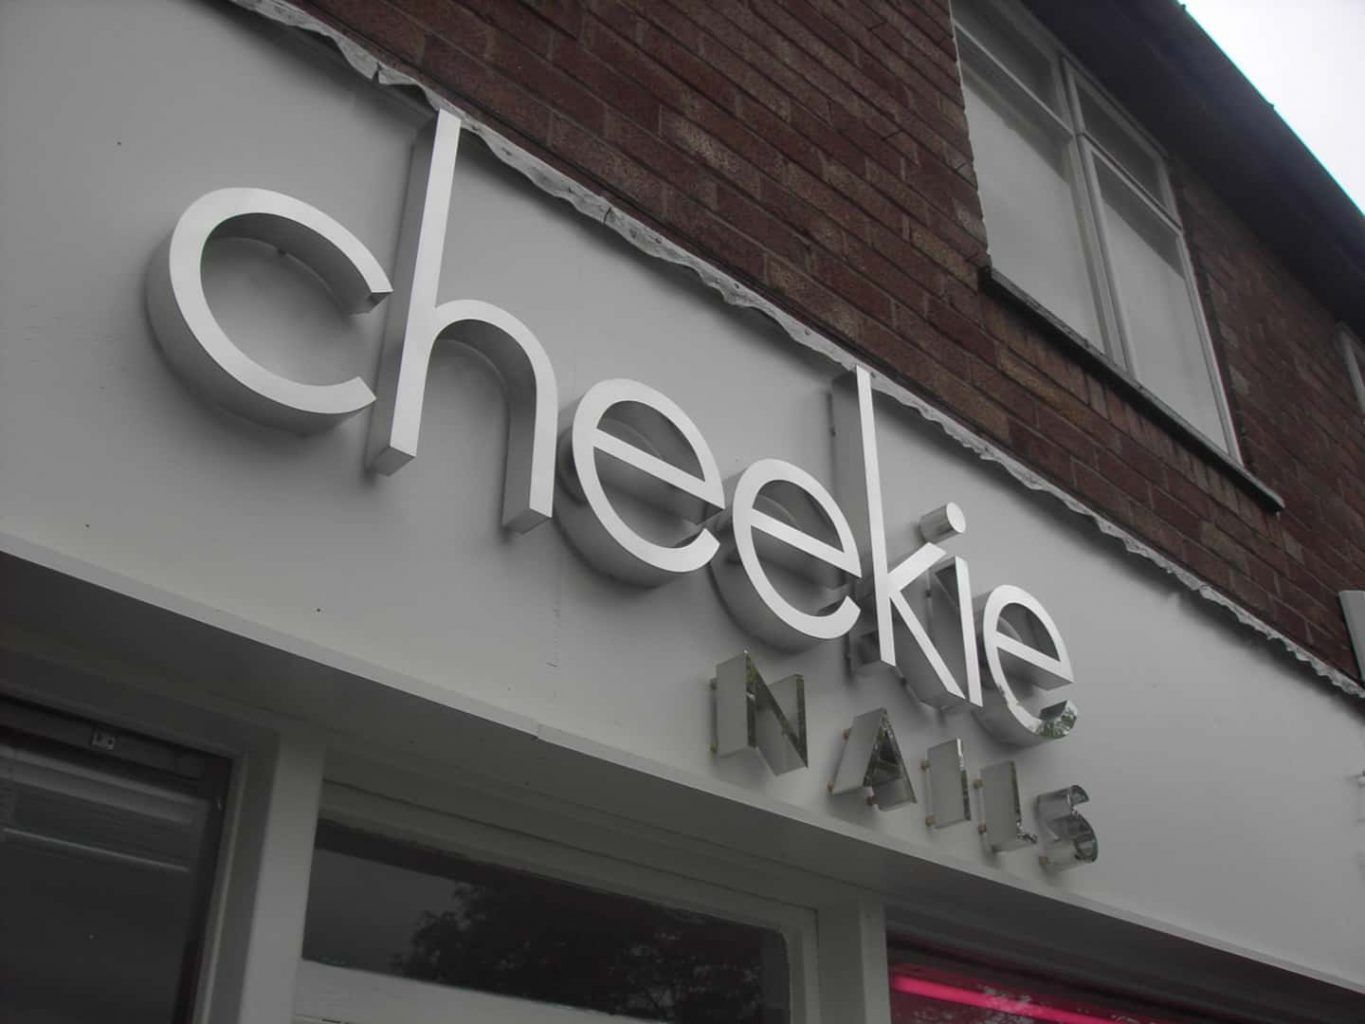 Cheekie Nails - Built Up Lettering